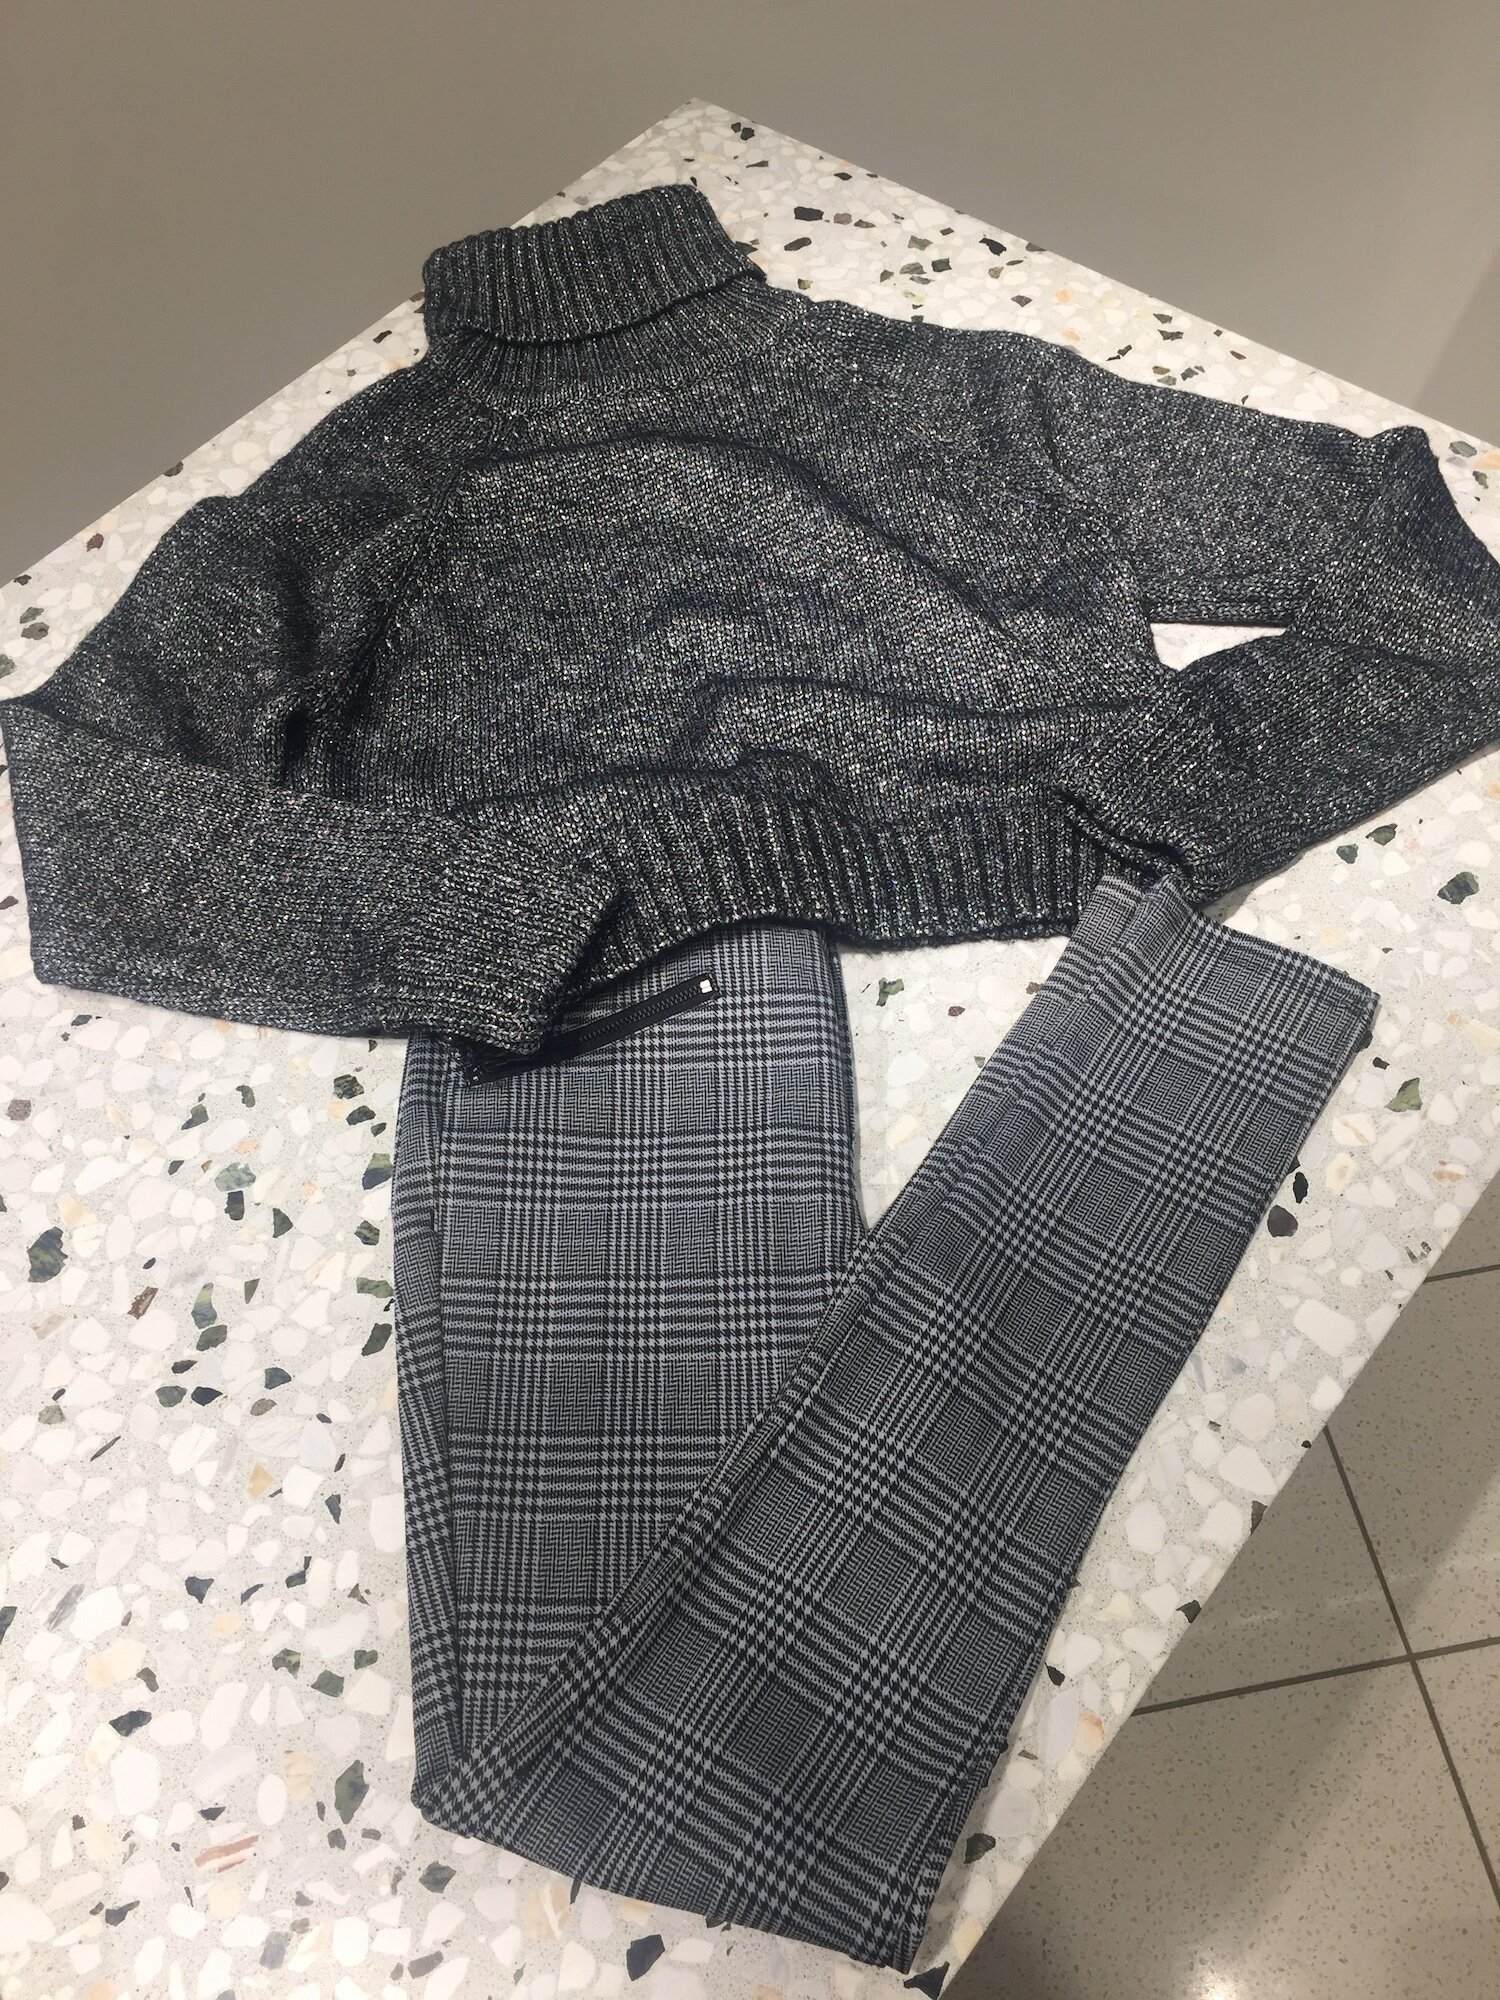 Simple, classic and chic; you can't go wrong with a slim slack in a trendy plaid print and a cozy turtleneck. Paired with a black booty or simple black leather sneaker, this outfit works for the 9 to 5 and for running errands on the weekend. Outfit from Nordstrom.